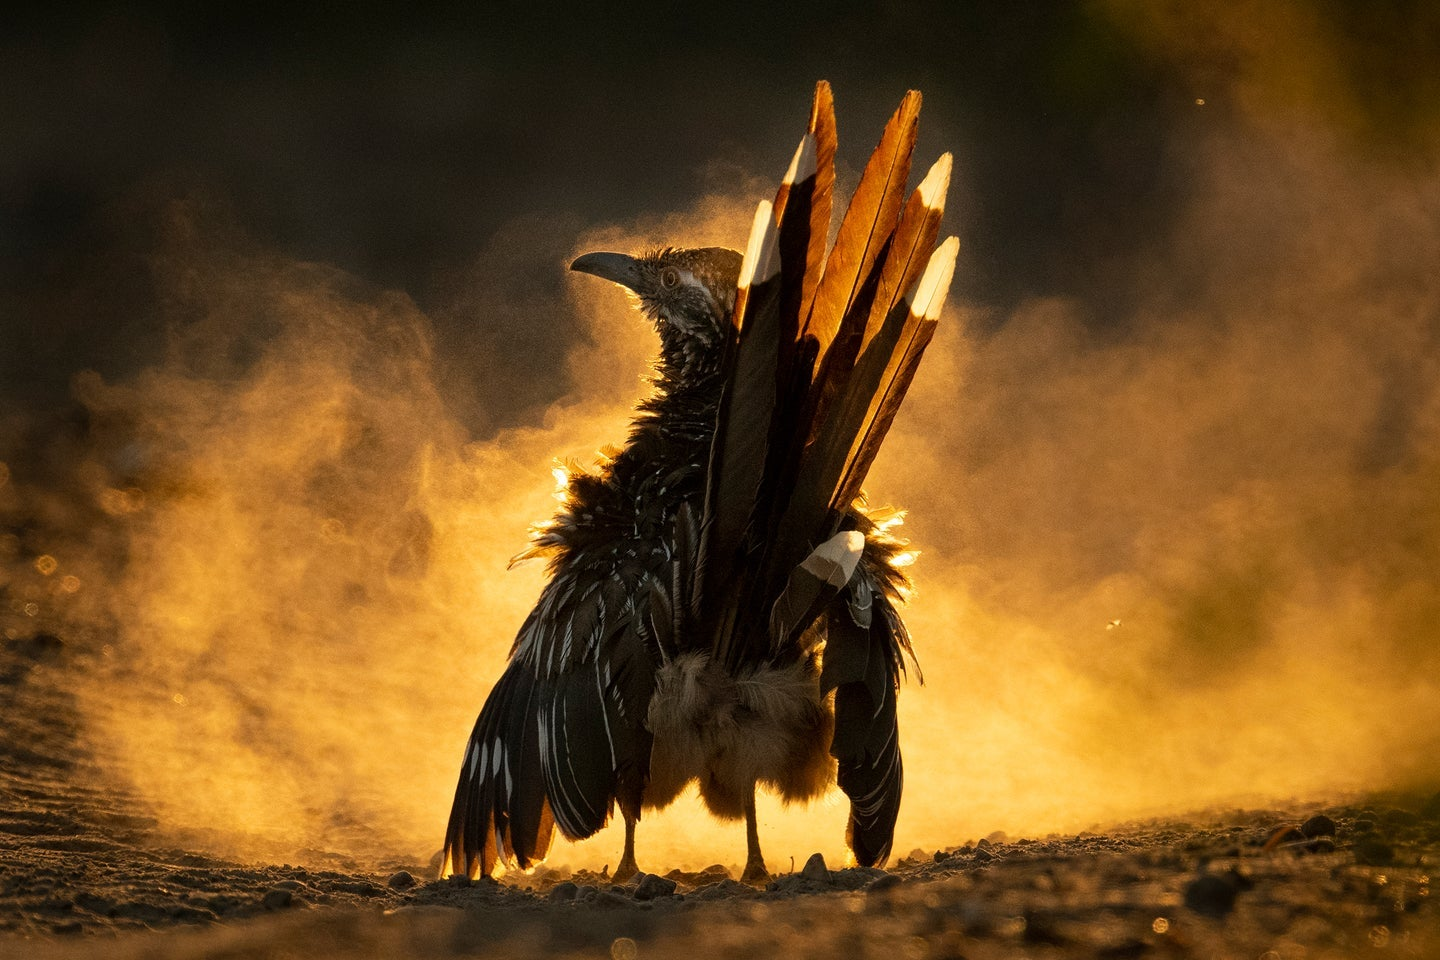 Great roadrunner with dust and sunlight swirling around it in